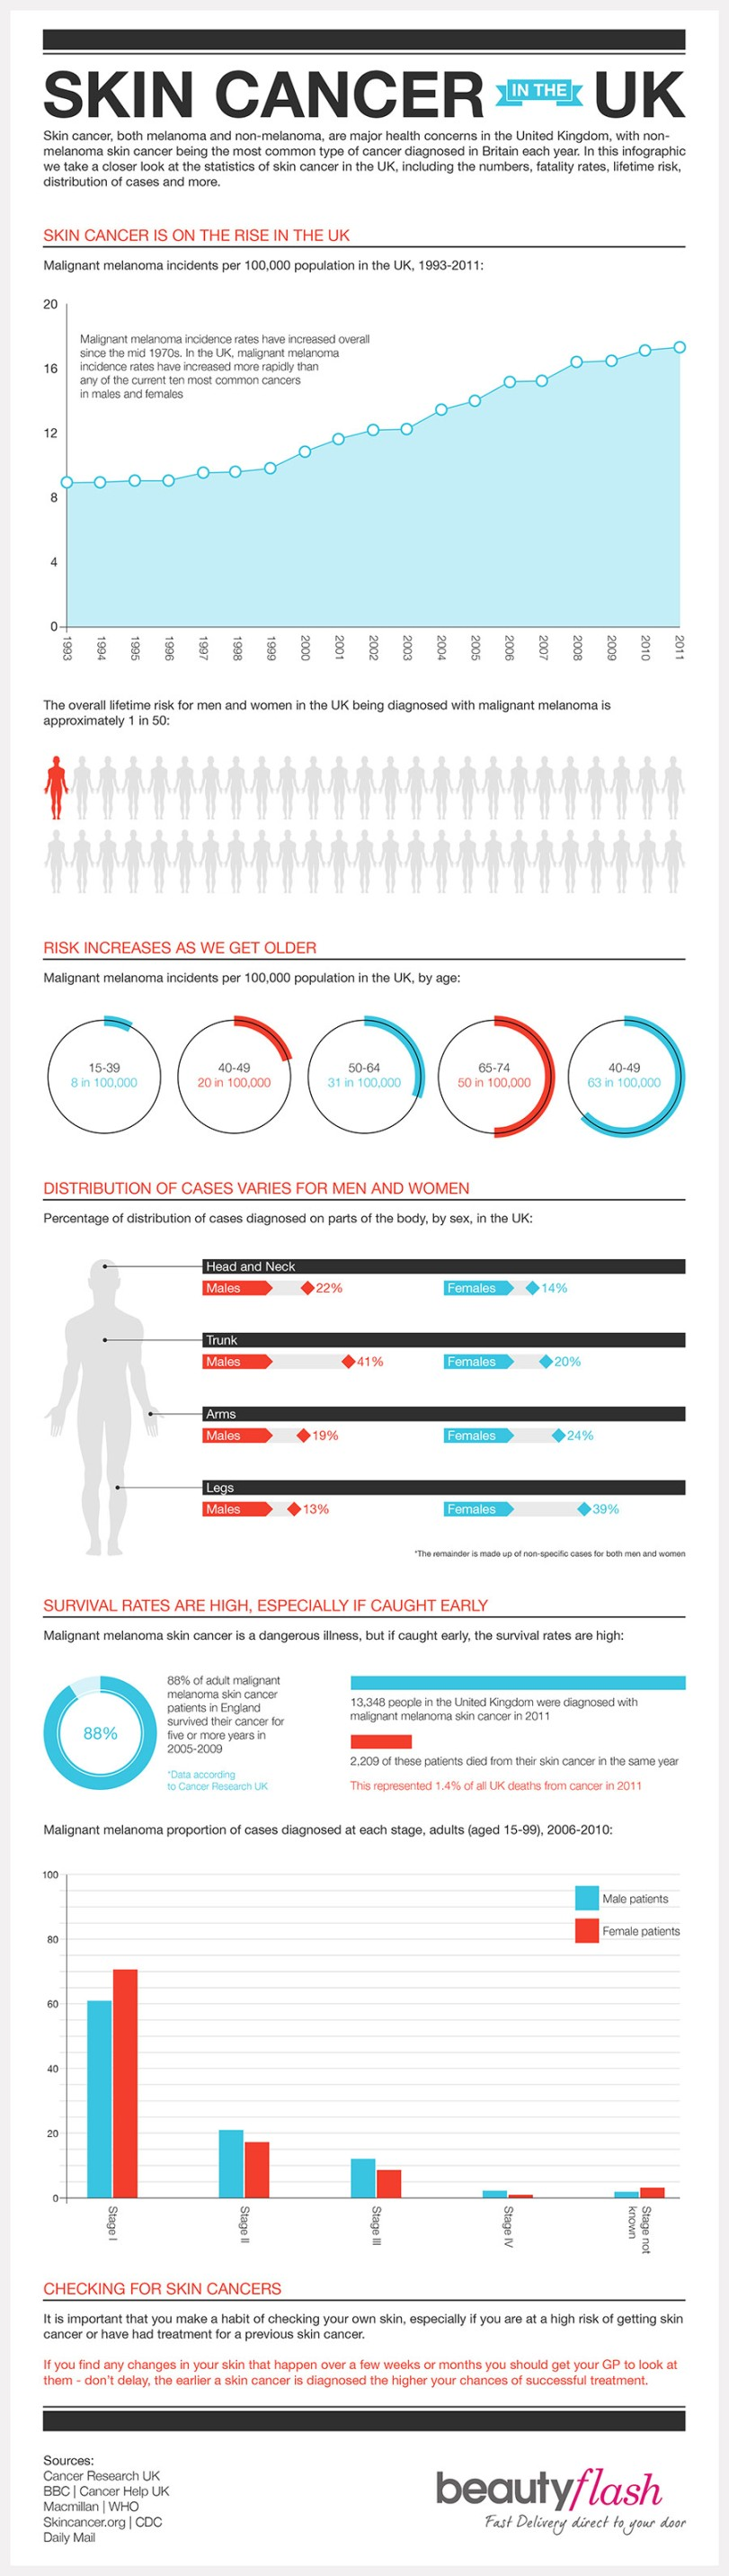 Skin Cancer in the UK by Beauty Flash